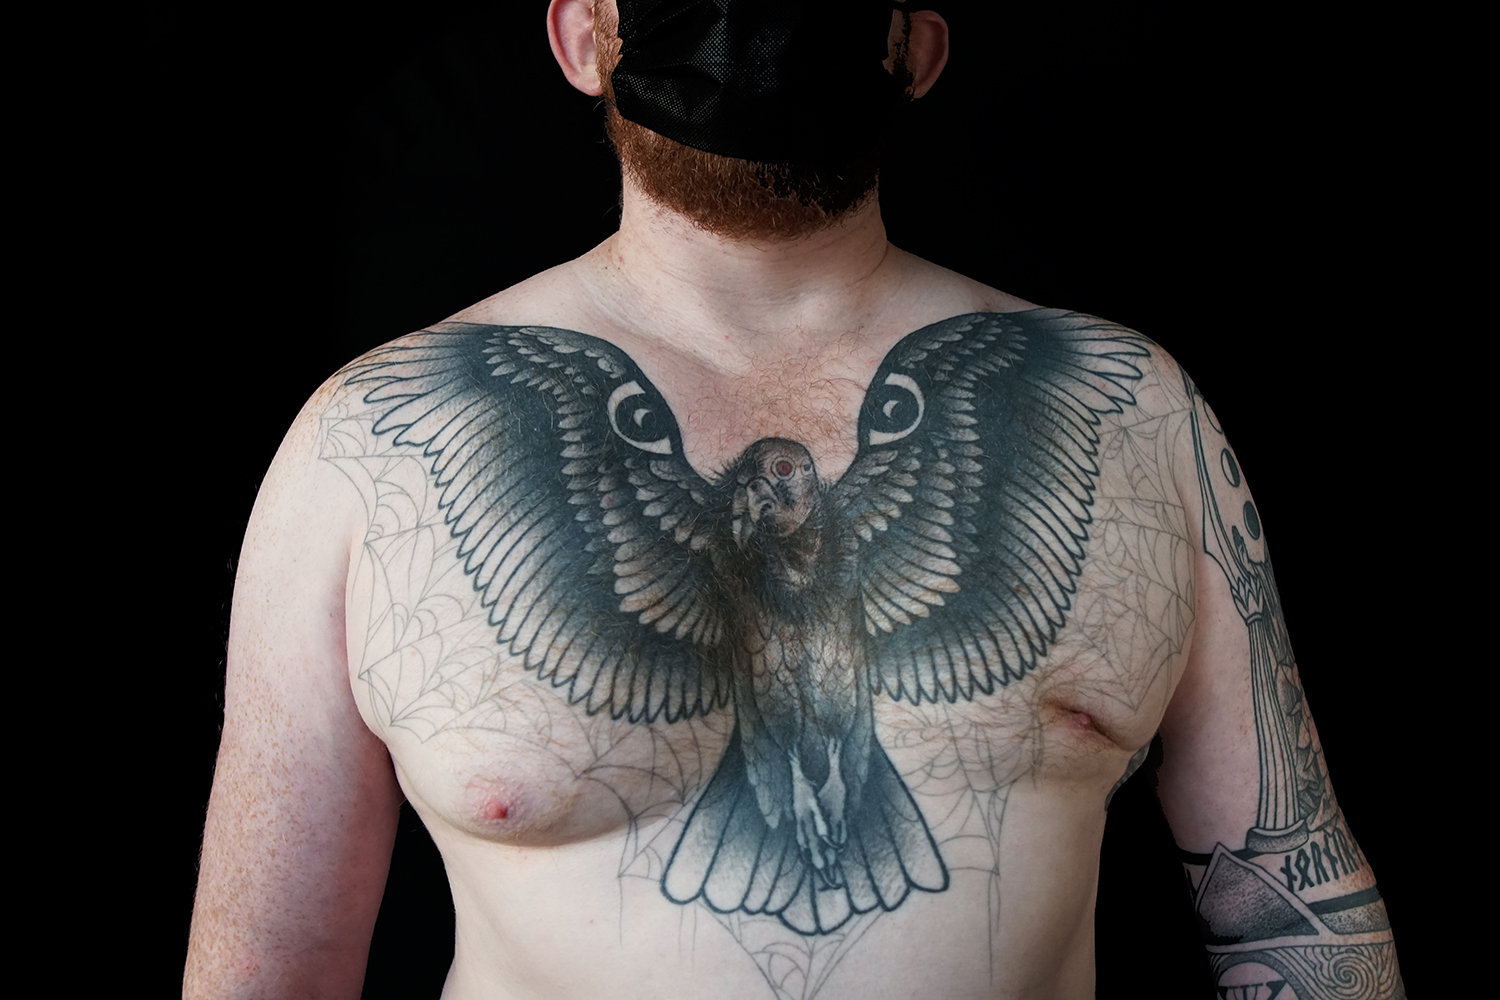 Along with the large bird on the chest, the client requested that it be surrounded by subtle spider webs.